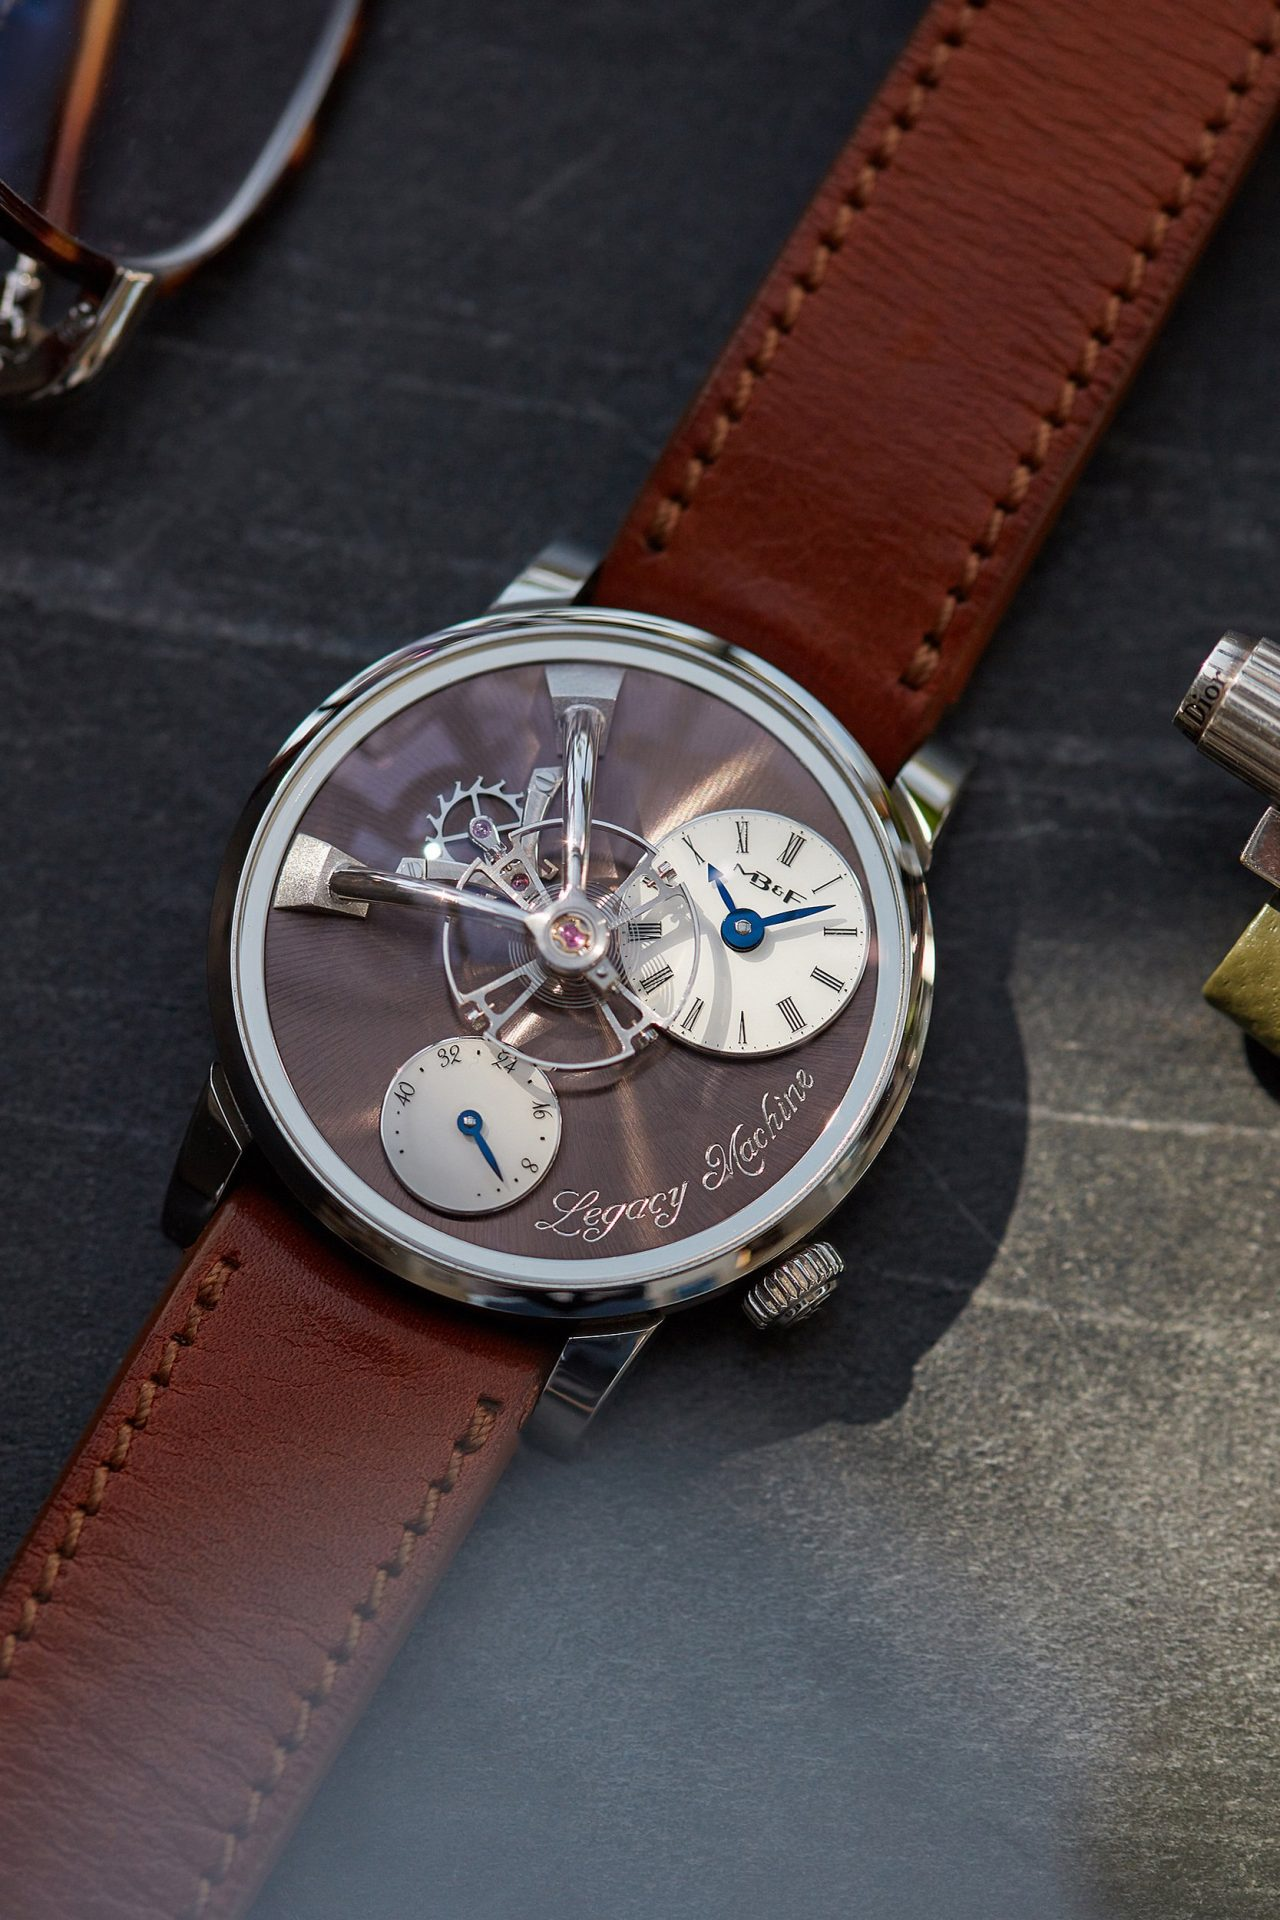 MB&F LM101 Hodinkee LE front in The Role Played by 'Collaborations' in Watchmaking for A Collected Man London